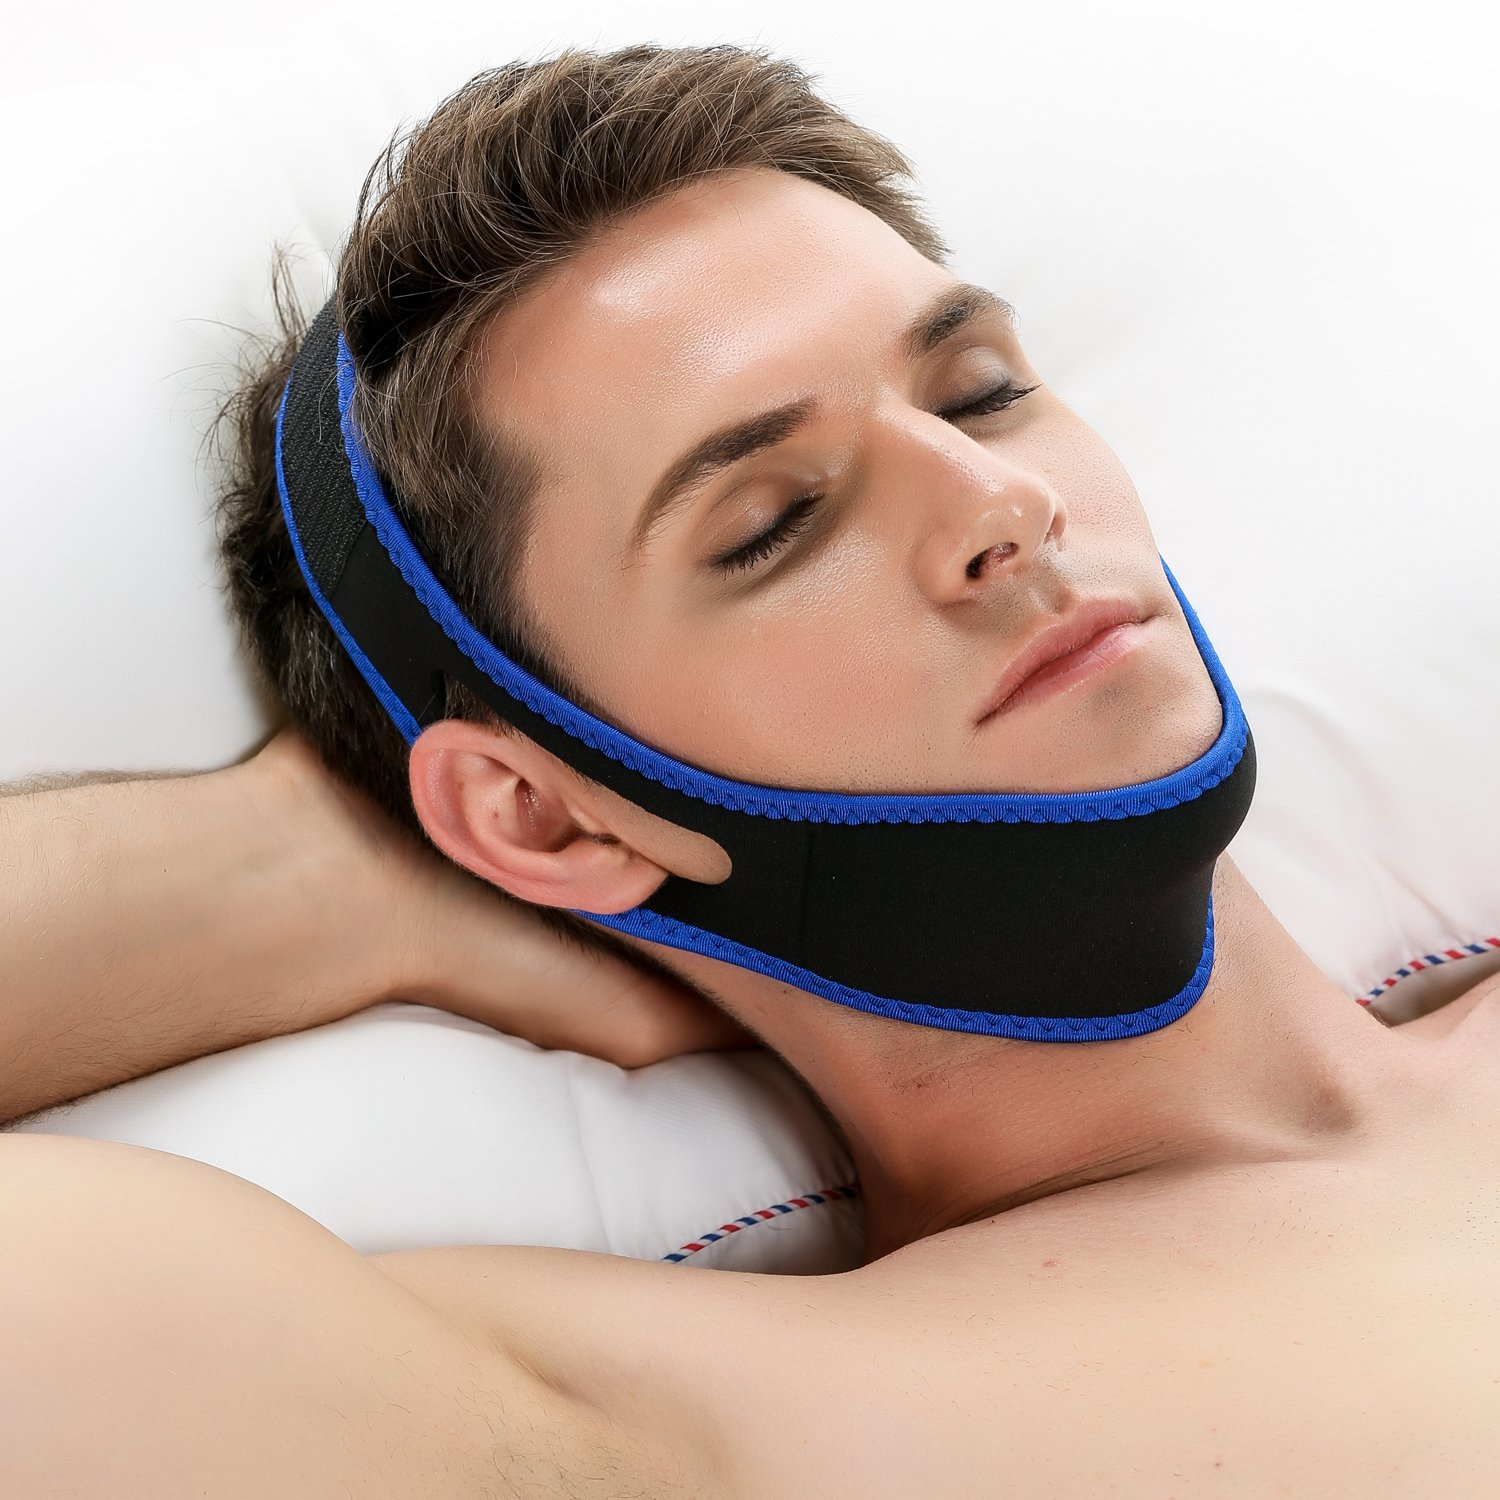 Snorepin Anti Snoring Aid Sleep Device The Smarter Solution